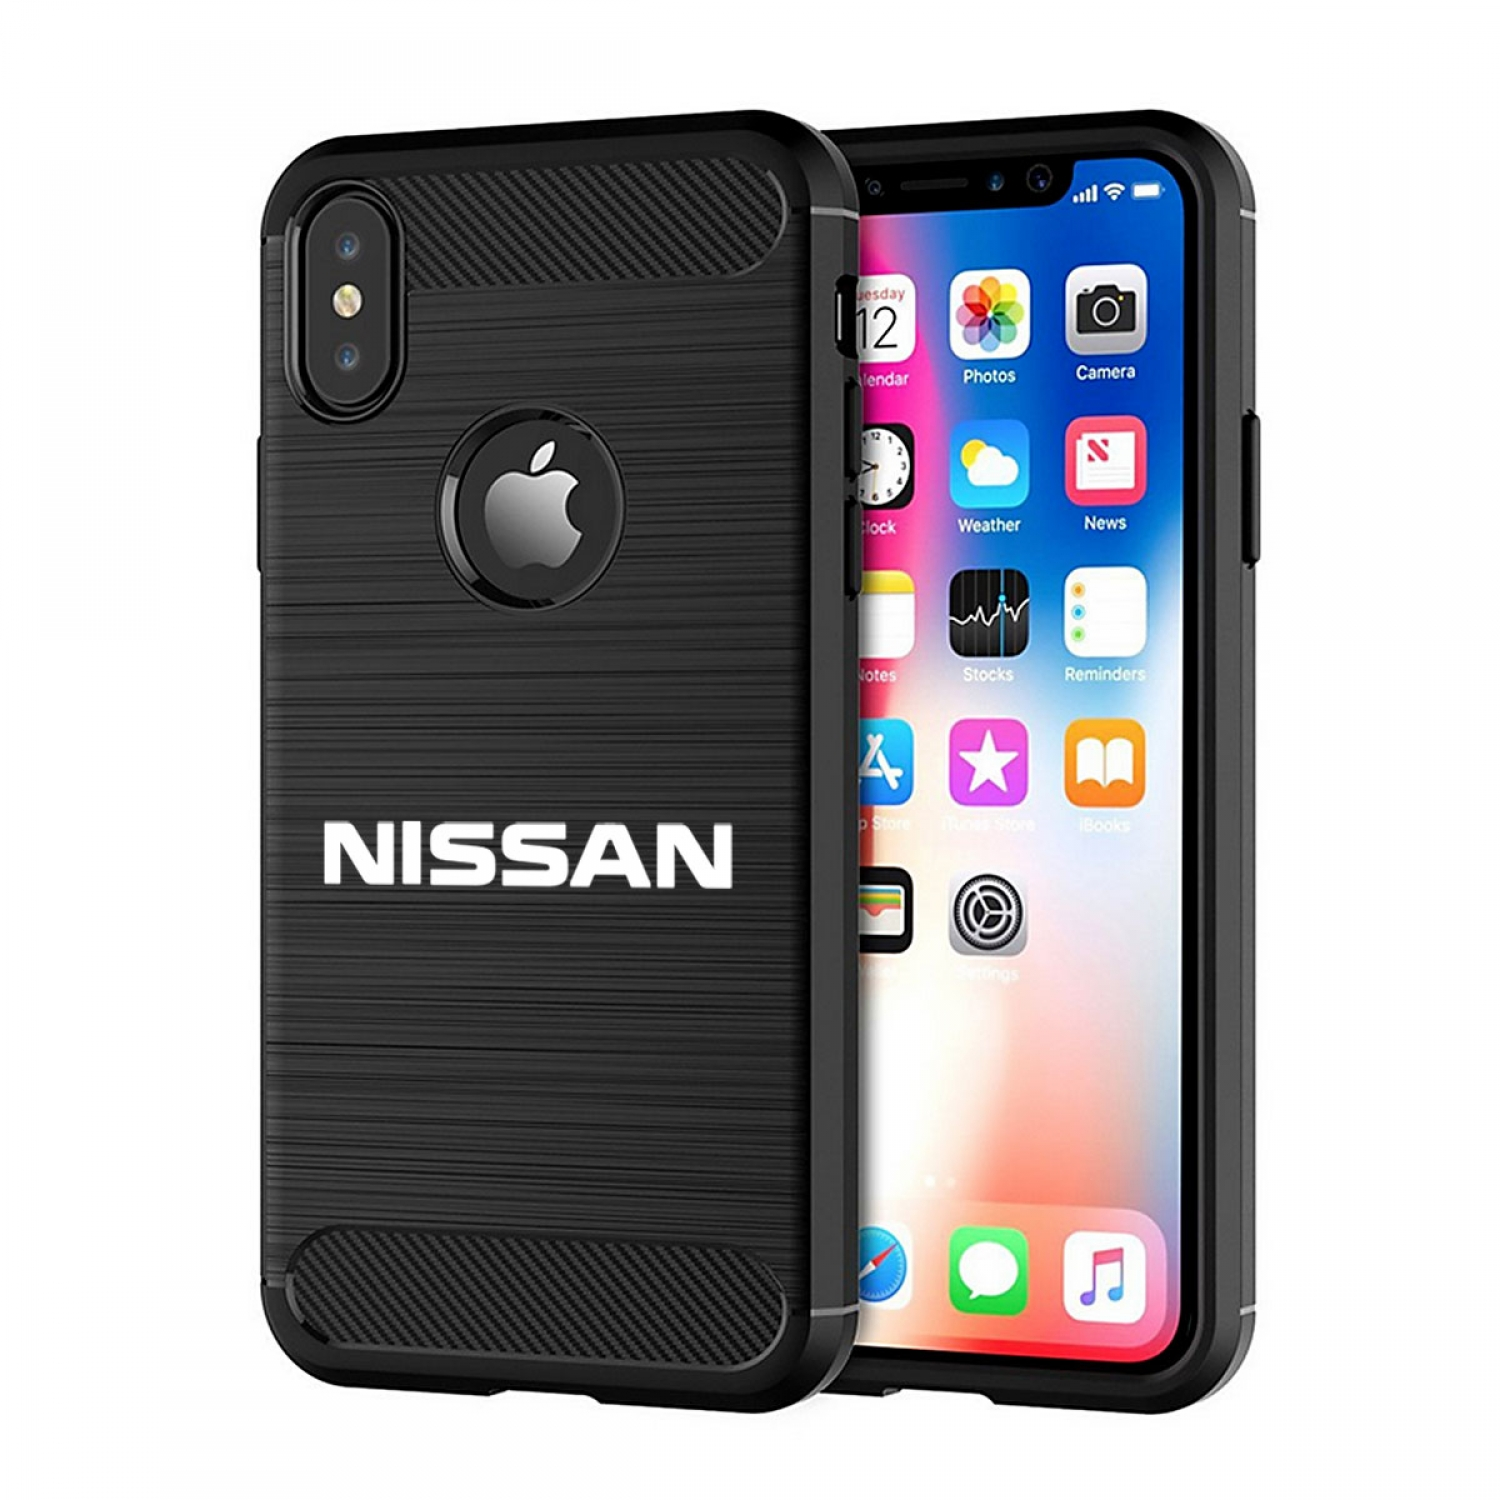 Nissan Name iPhone X TPU Shockproof Black Carbon Fiber Textures Stripes Cell Phone Case